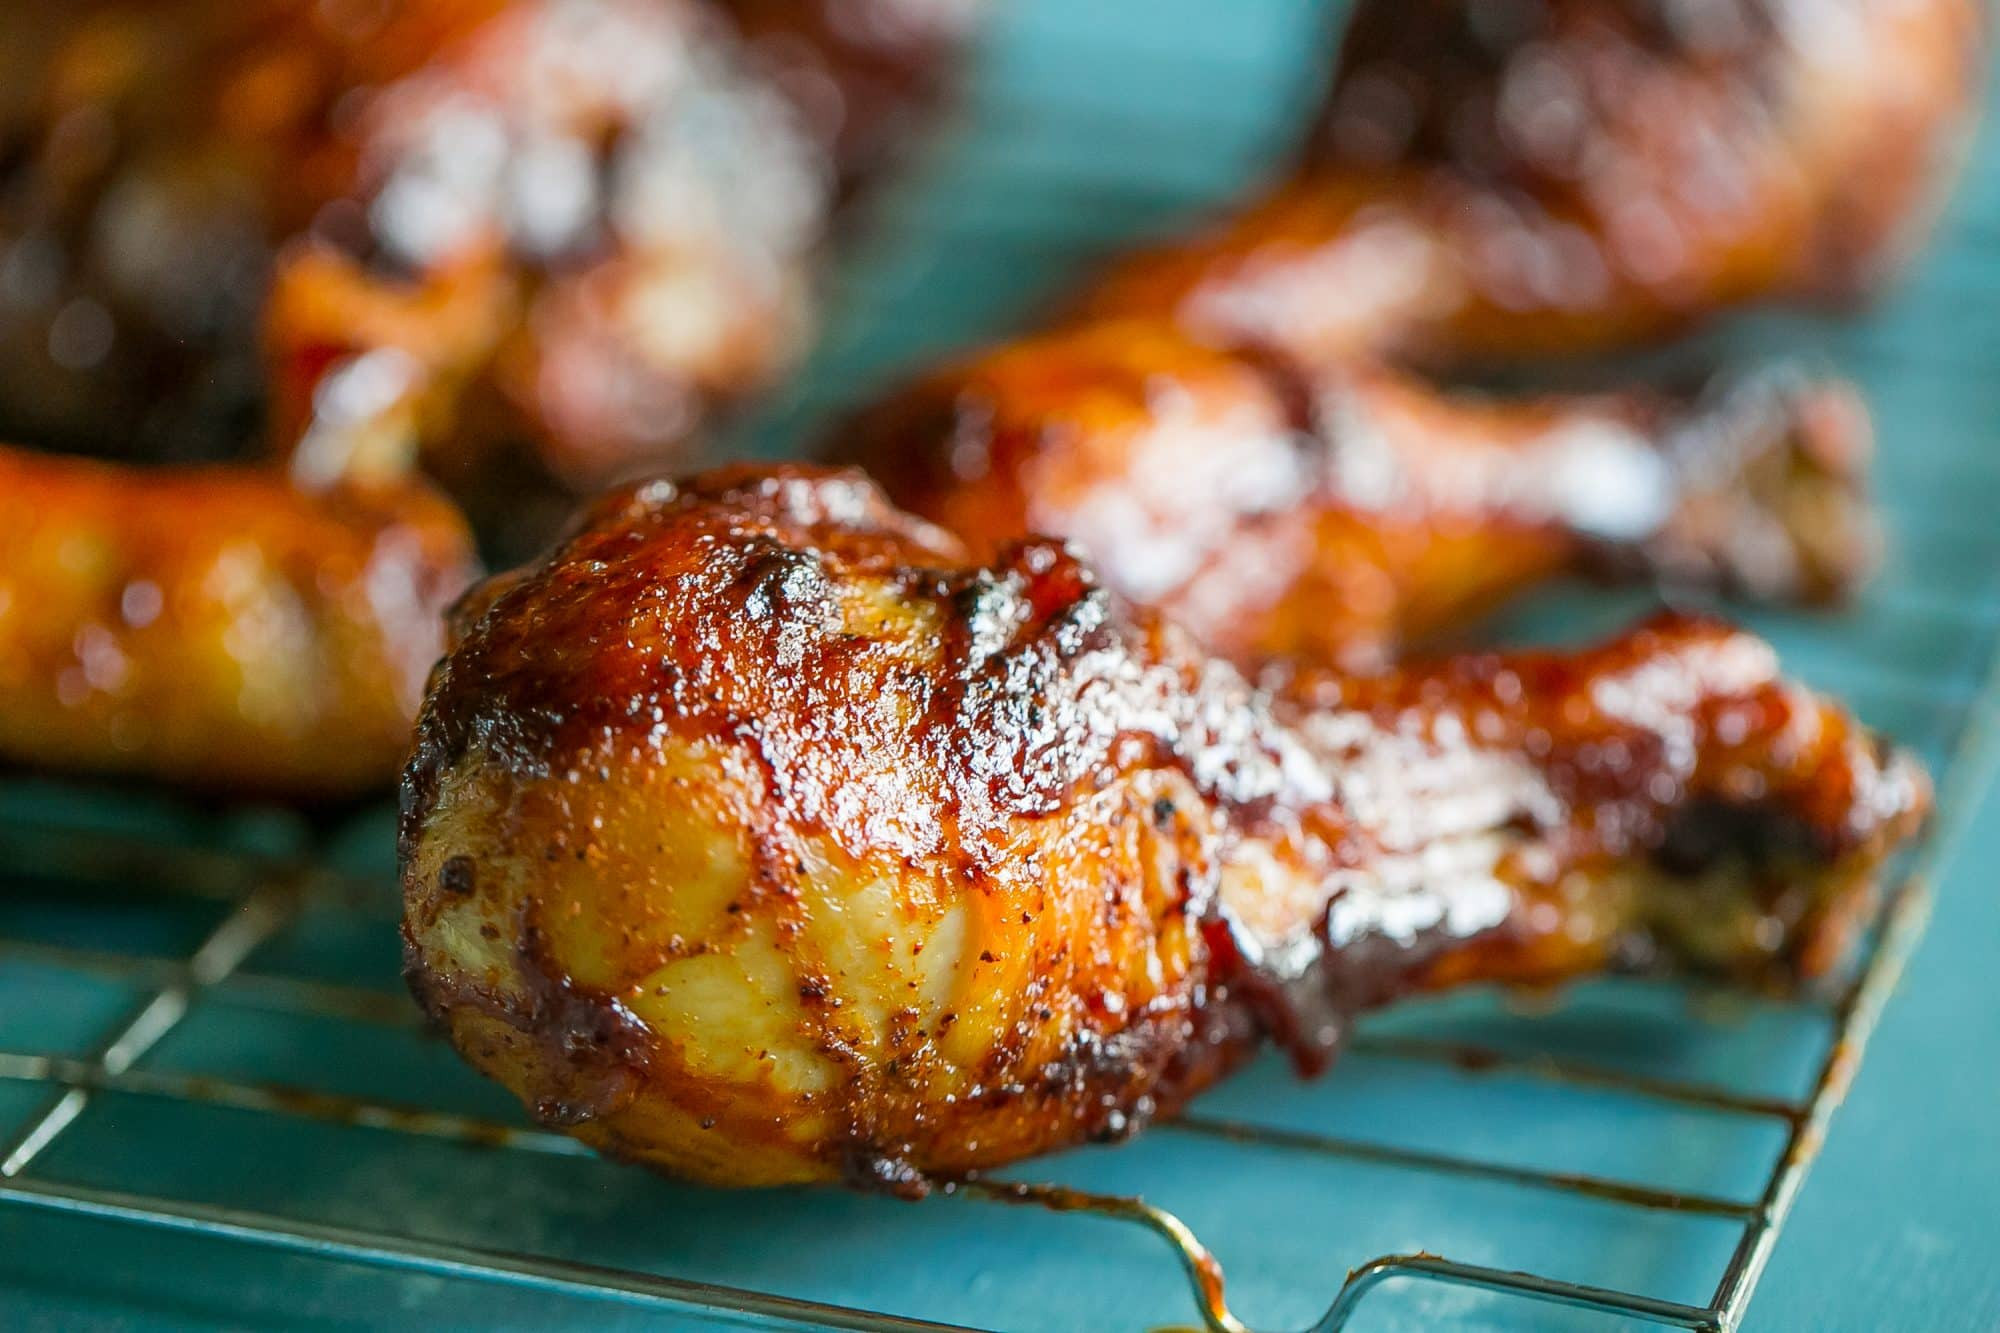 Baked Bbq Chicken Drumsticks  Crunchy Baked BBQ Chicken Drumsticks Sweet Cs Designs